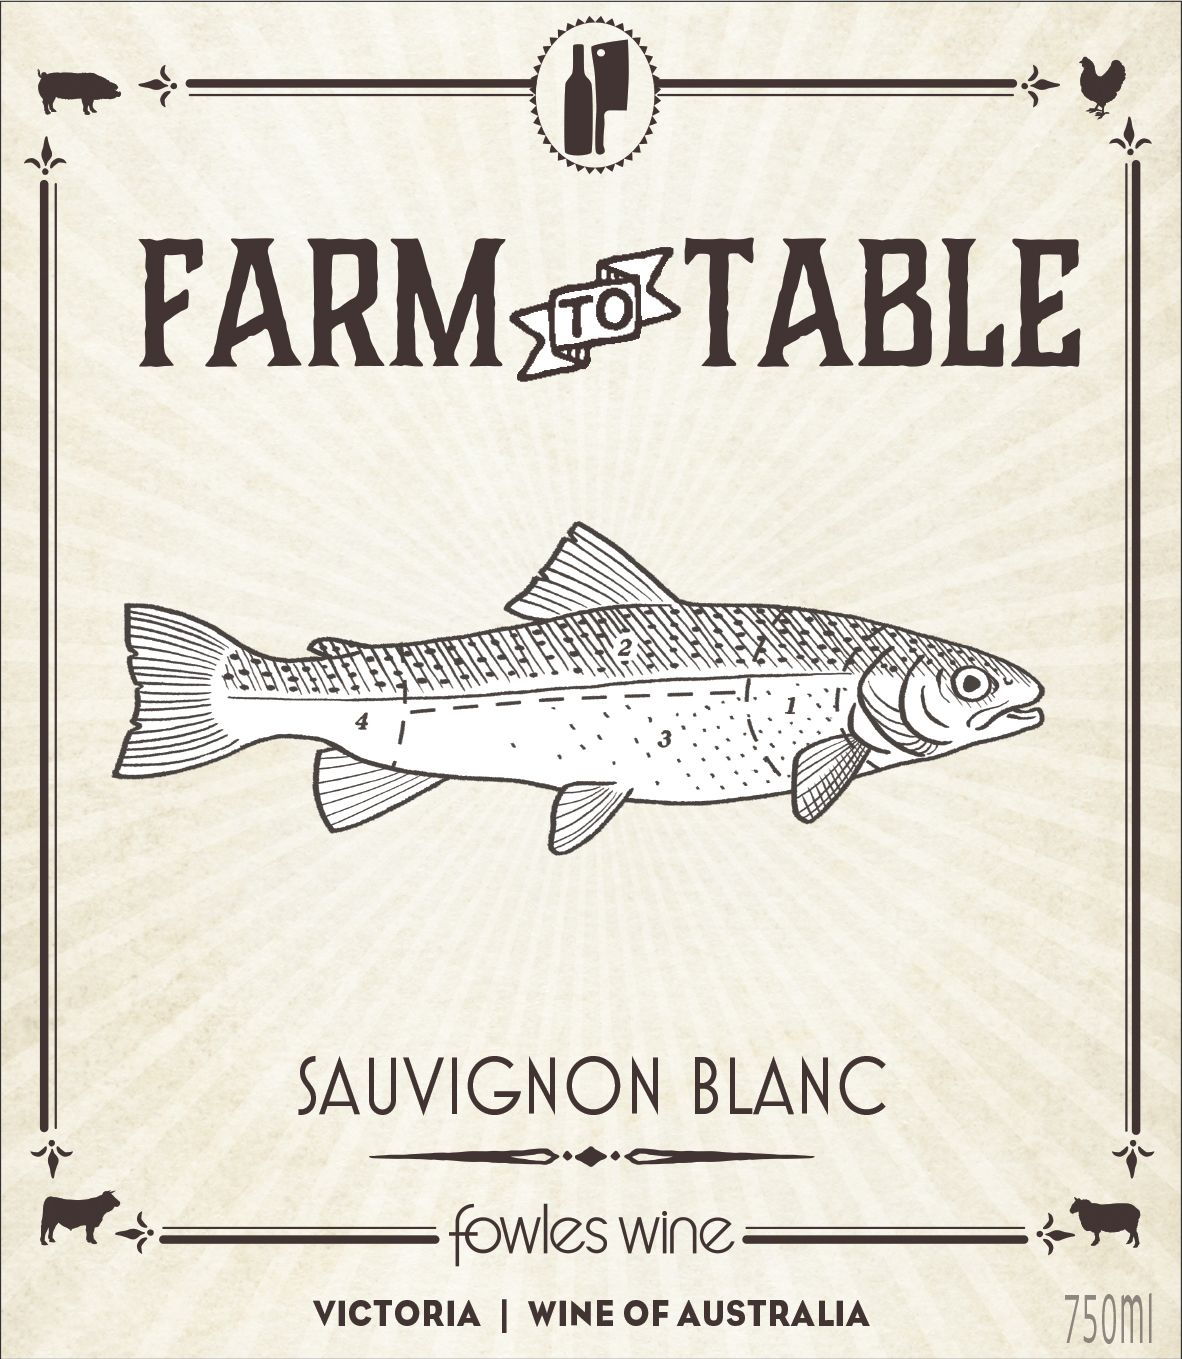 Fowles Wine Farm to Table Sauvignon Blanc 2018  Front Label